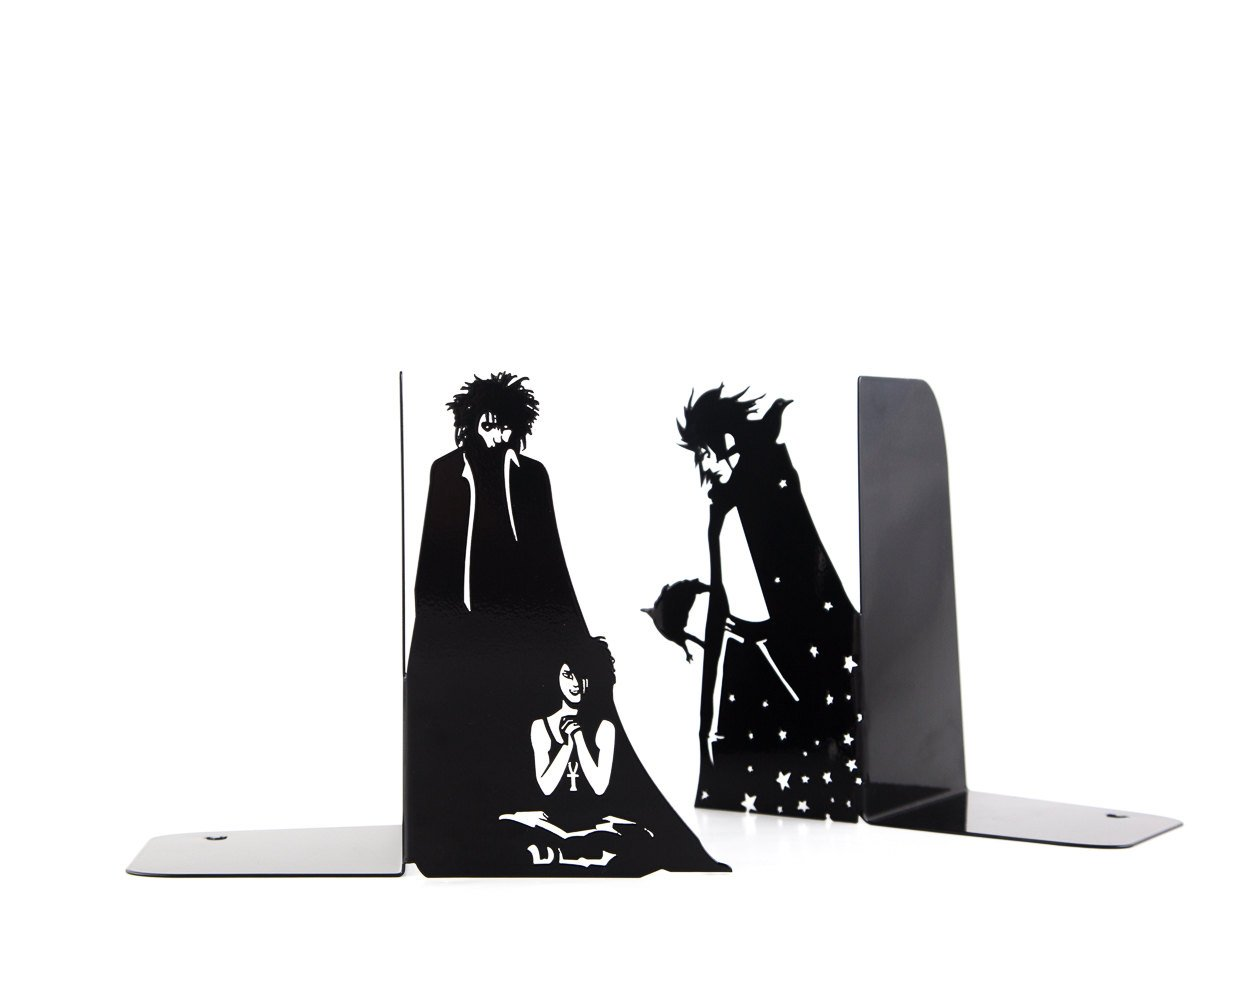 Metal Bookends Sandman for Comics Fans // Book holders Sandman For Your Child's Favorite Books and Comics // Free Shipping Worldwide - Design Atelier Article